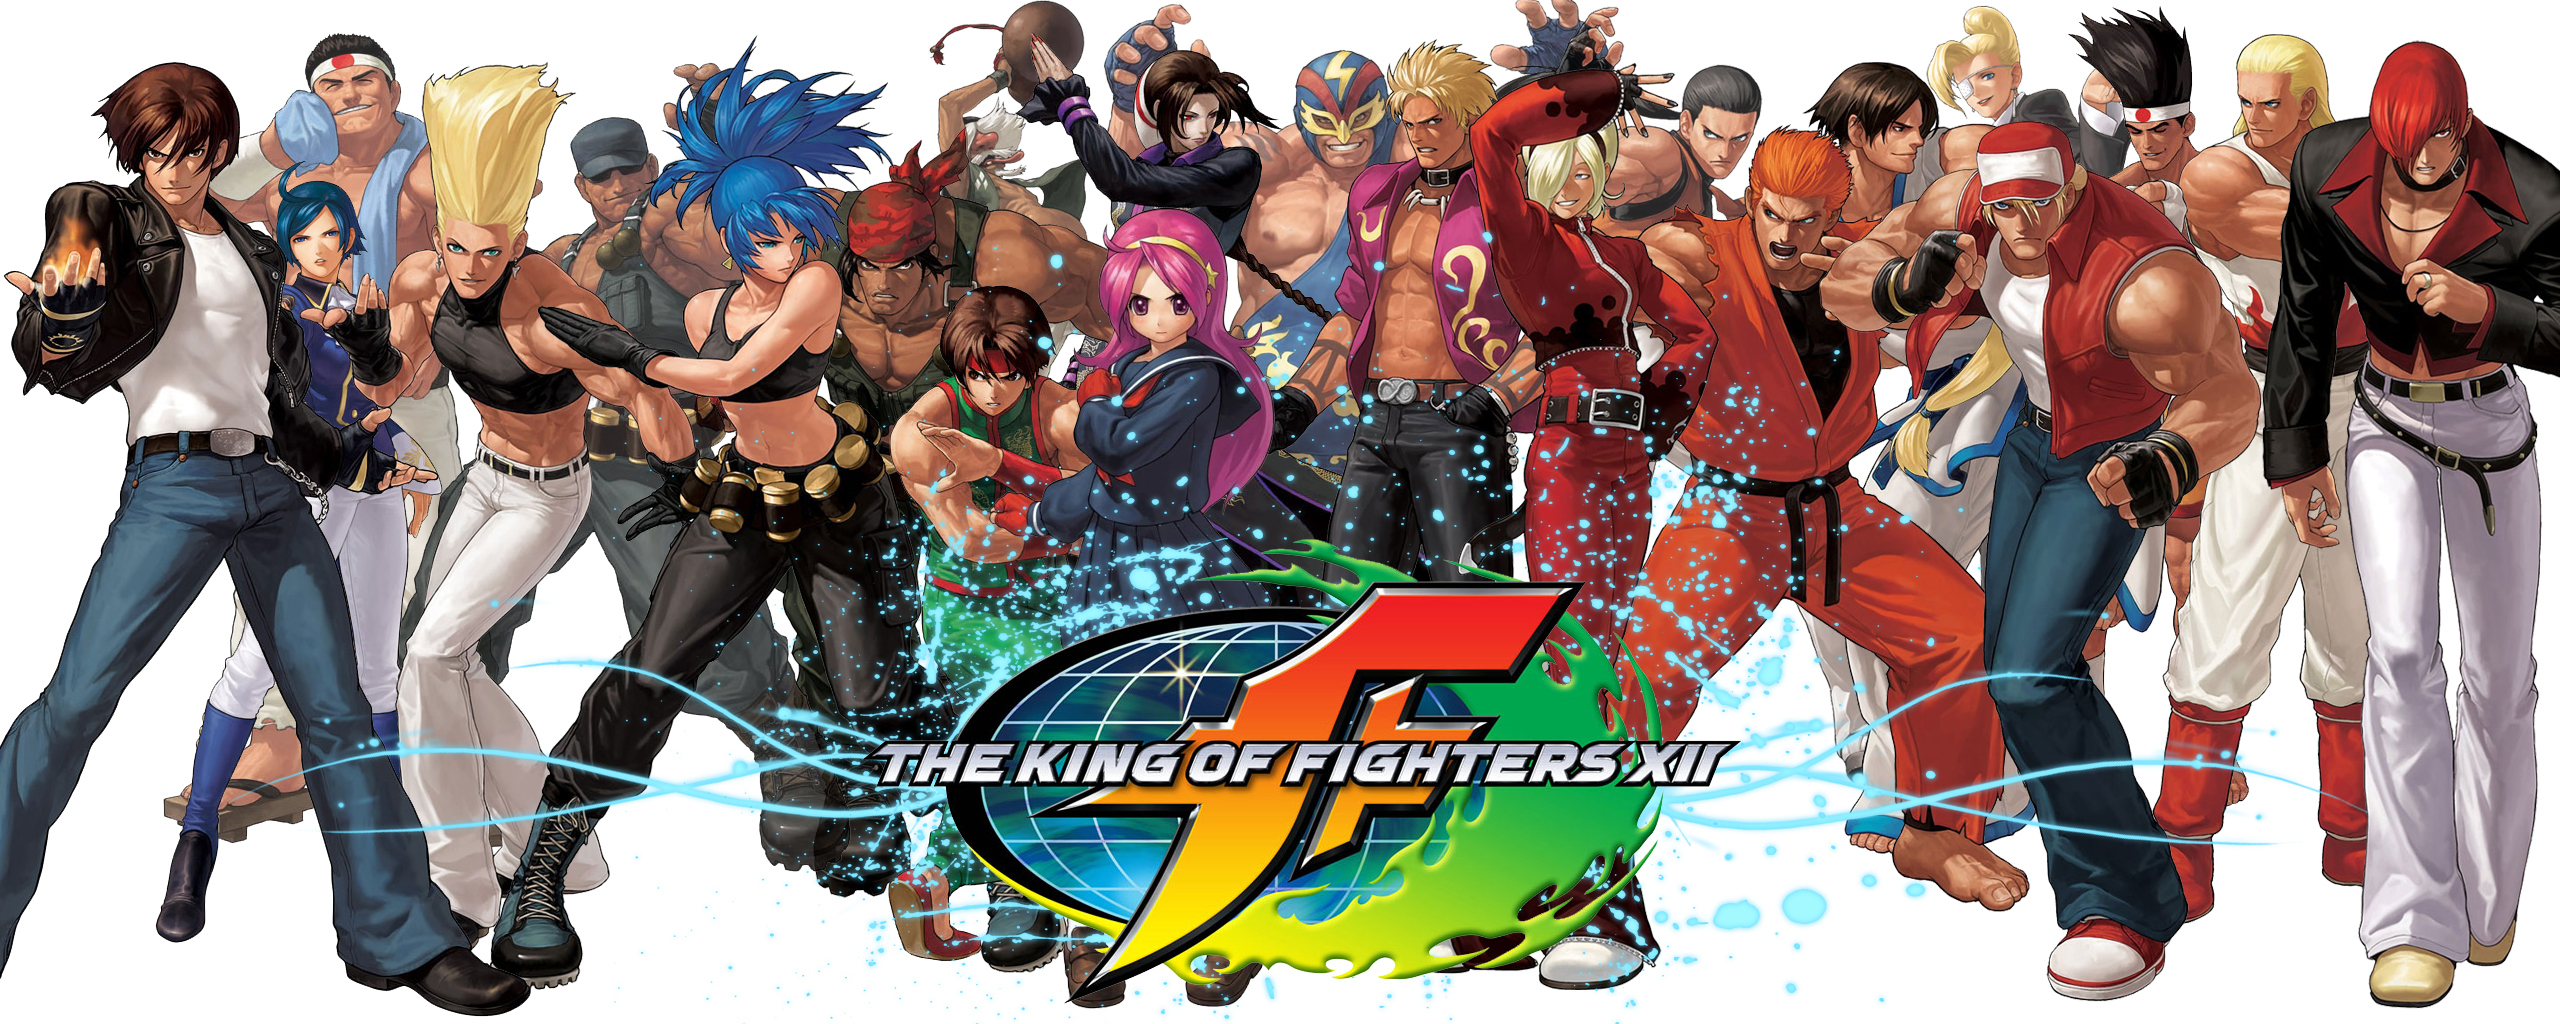 fighters king